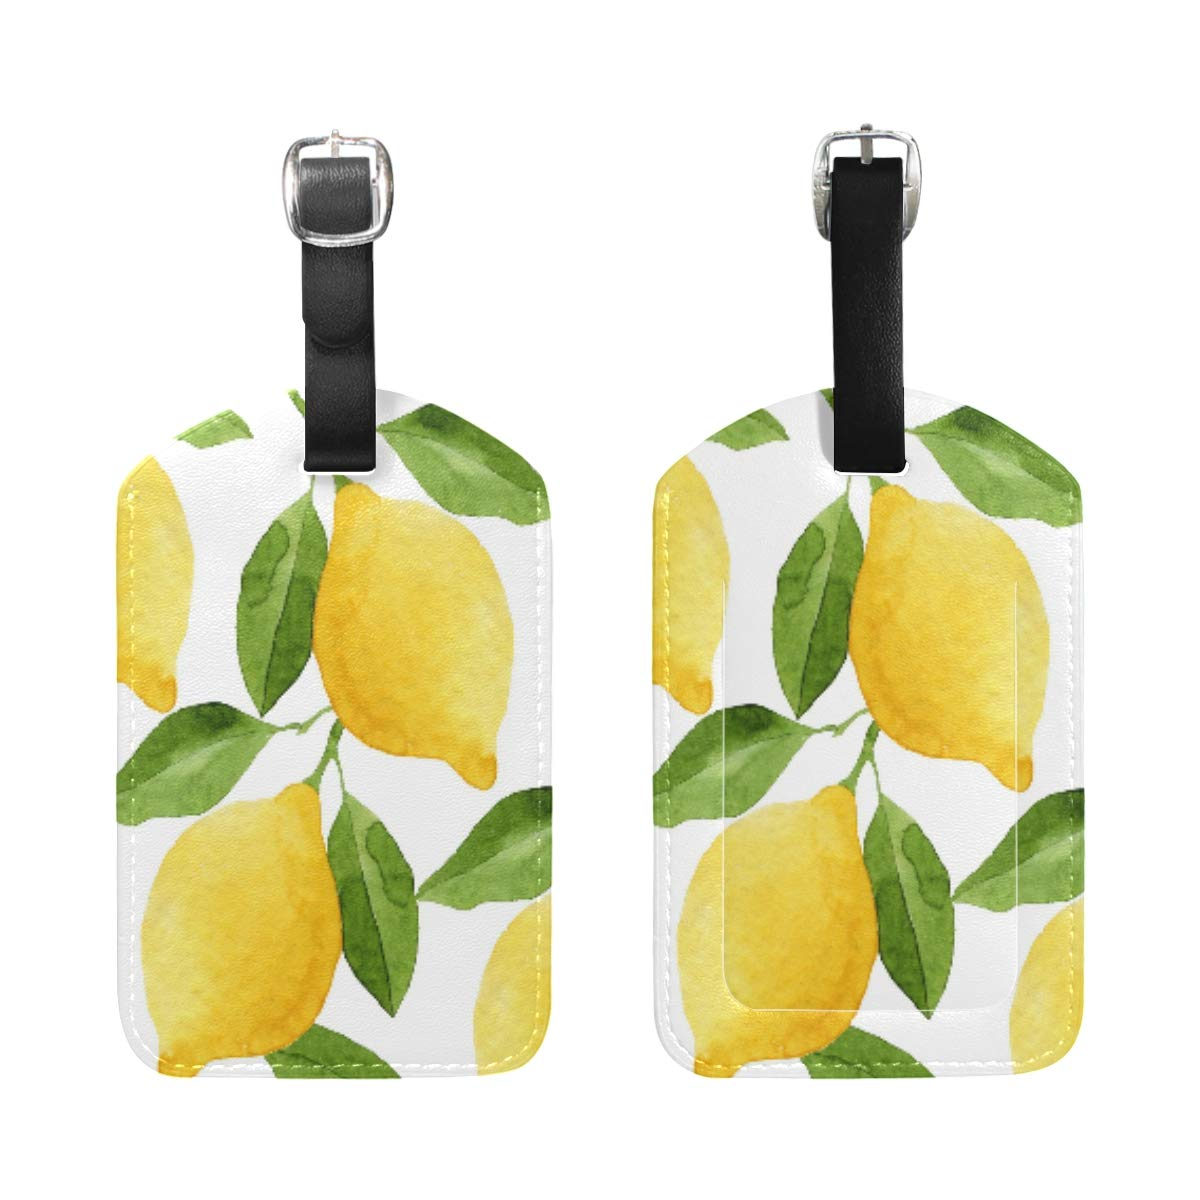 Fruits Drinks Flamingo Luggage Tag Label Travel Bag Label With Privacy Cover Luggage Tag Leather Personalized Suitcase Tag Travel Accessories